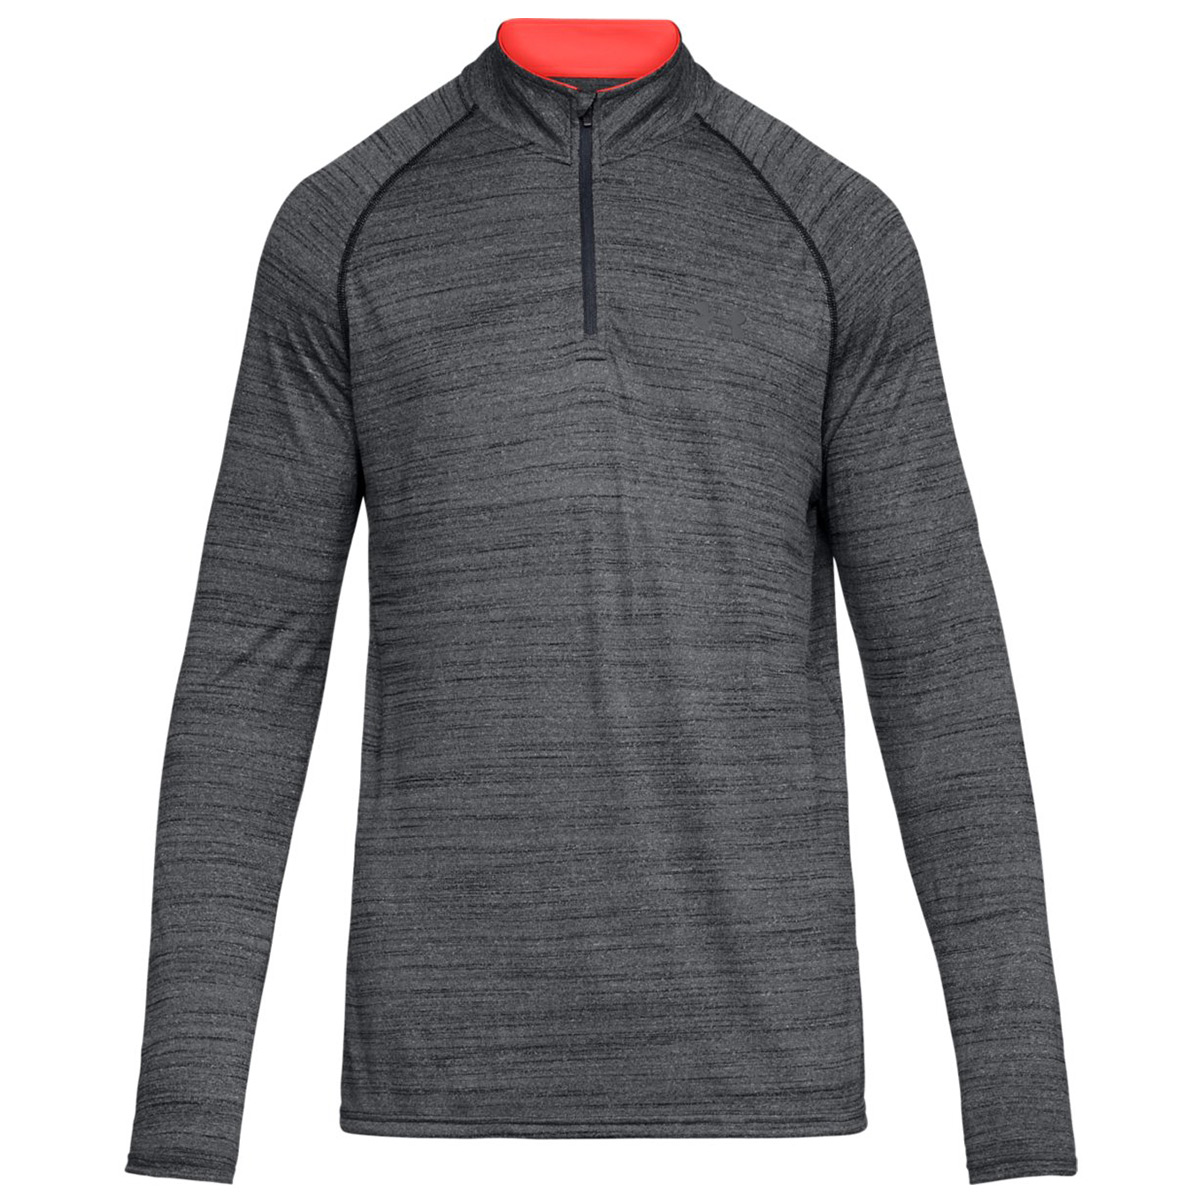 Under-Armour-Mens-UA-Tech-1-4-Zip-Long-Sleeve-Top-Workout-Layer-27-OFF-RRP thumbnail 24